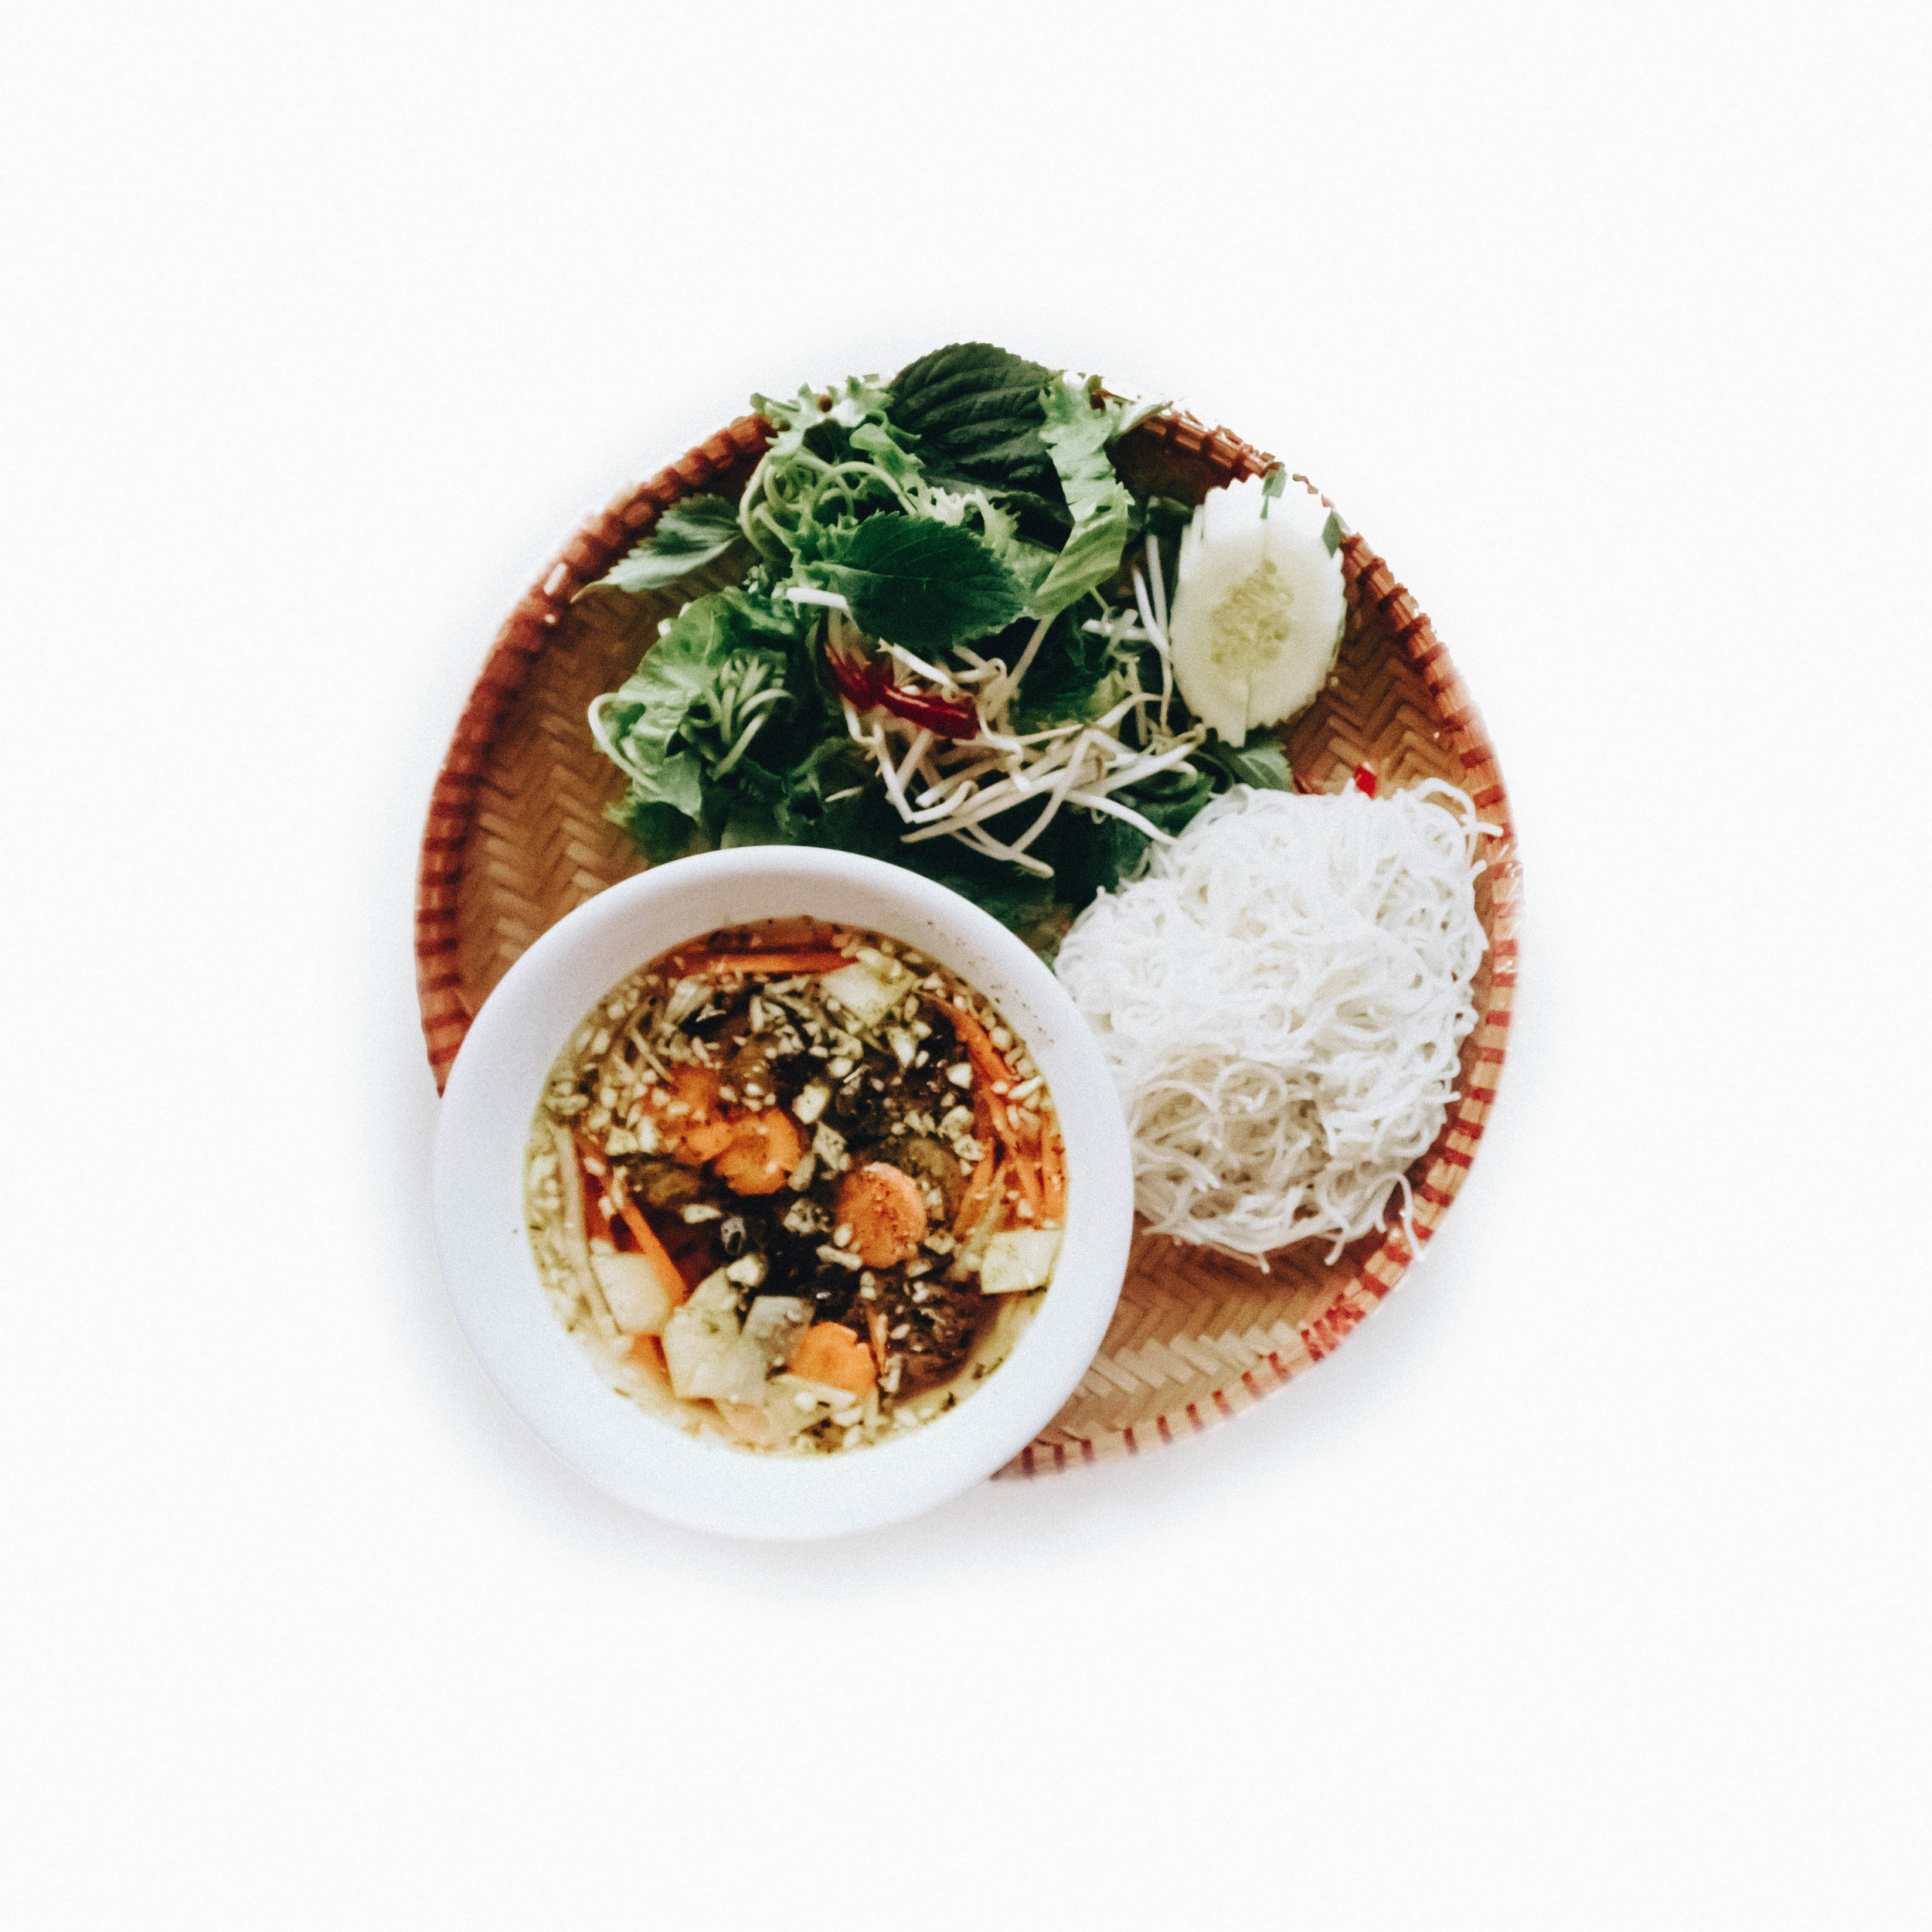 Bún Chả Hà Nội, a rustic vermicelli noodle dish paired with chargrilled pieces of sweet and savory pork belly and patties basking in a light fish sauce broth